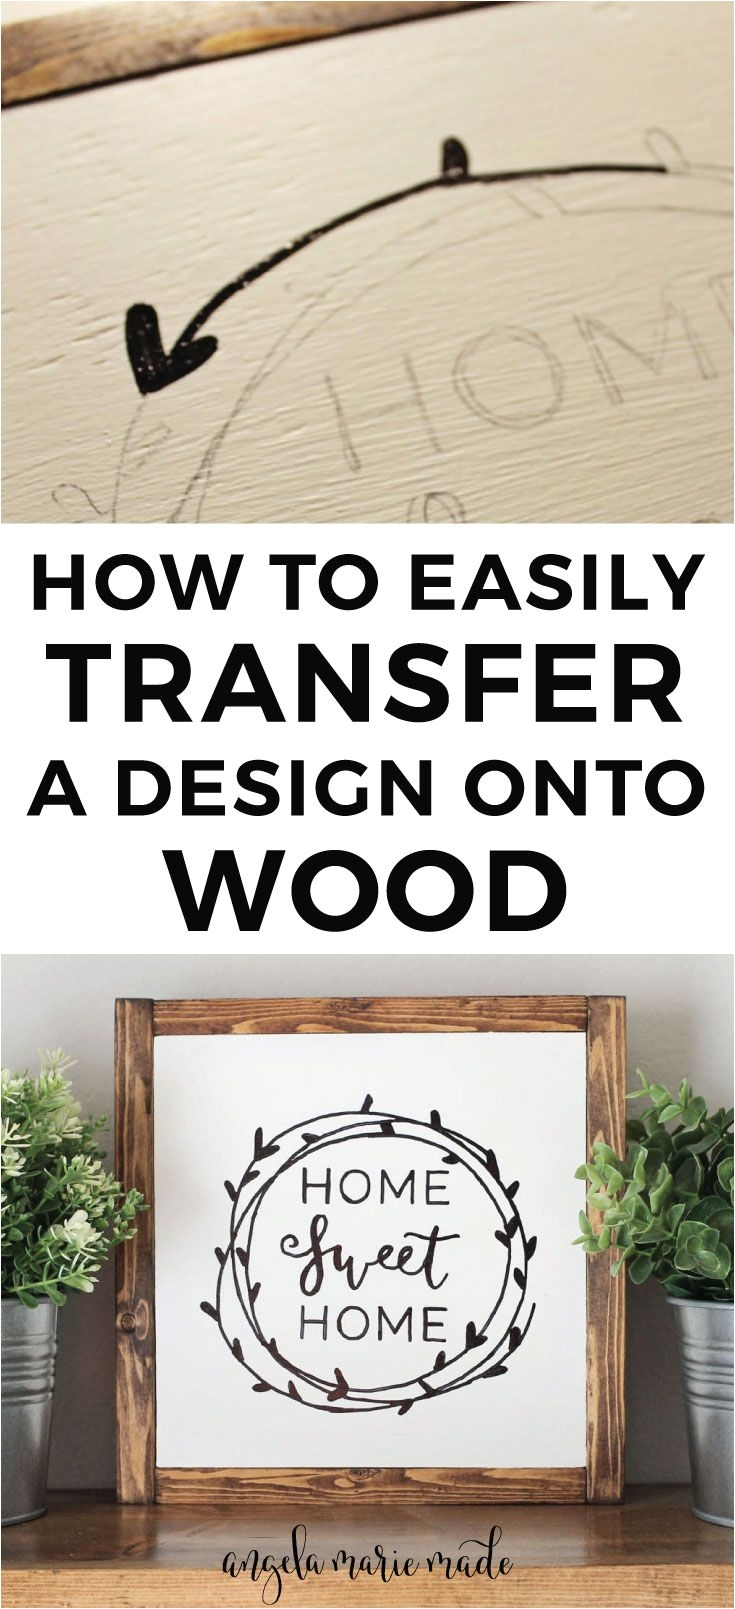 how to easily transfer a design onto wood with just a pencil easy diy wood sign and diy wedding signs home sweet home sign click to get the tutorial